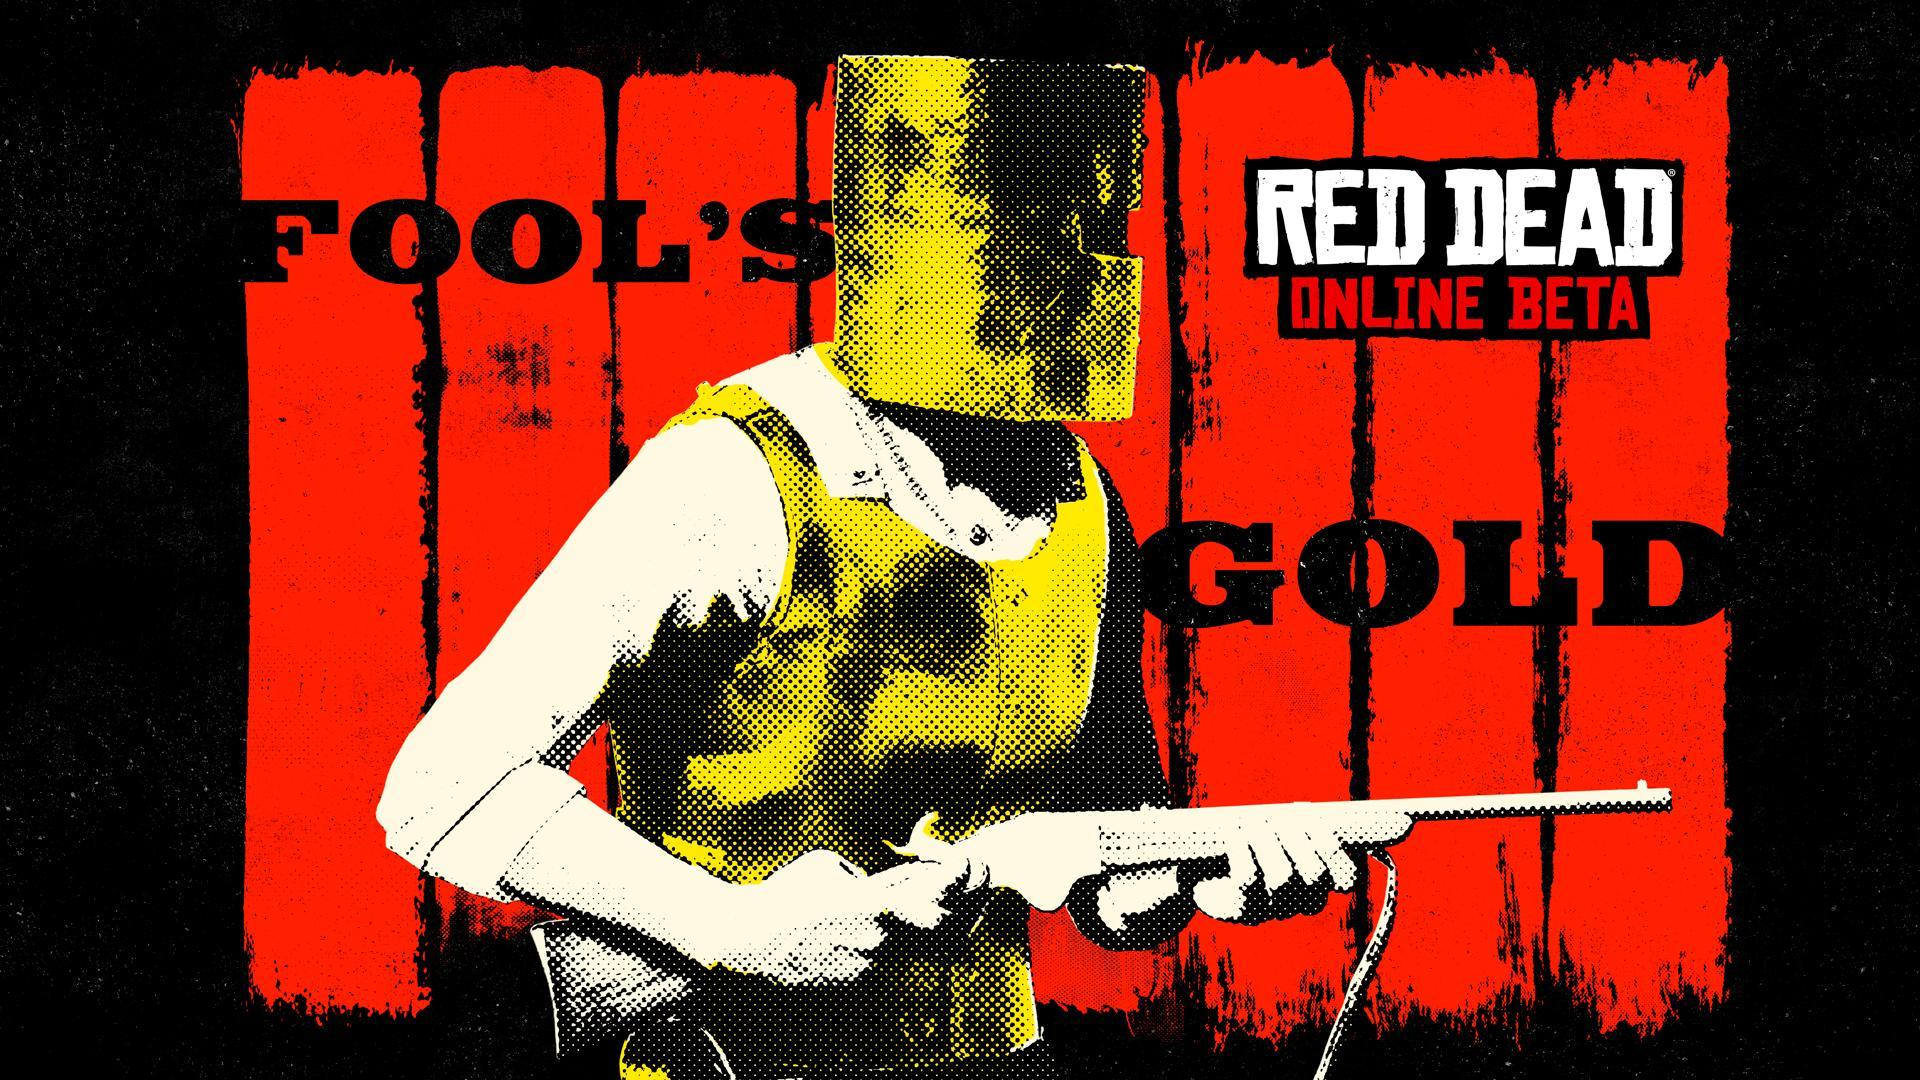 Red Dead Online: new Evans Repeater, Fool's Gold mode & more